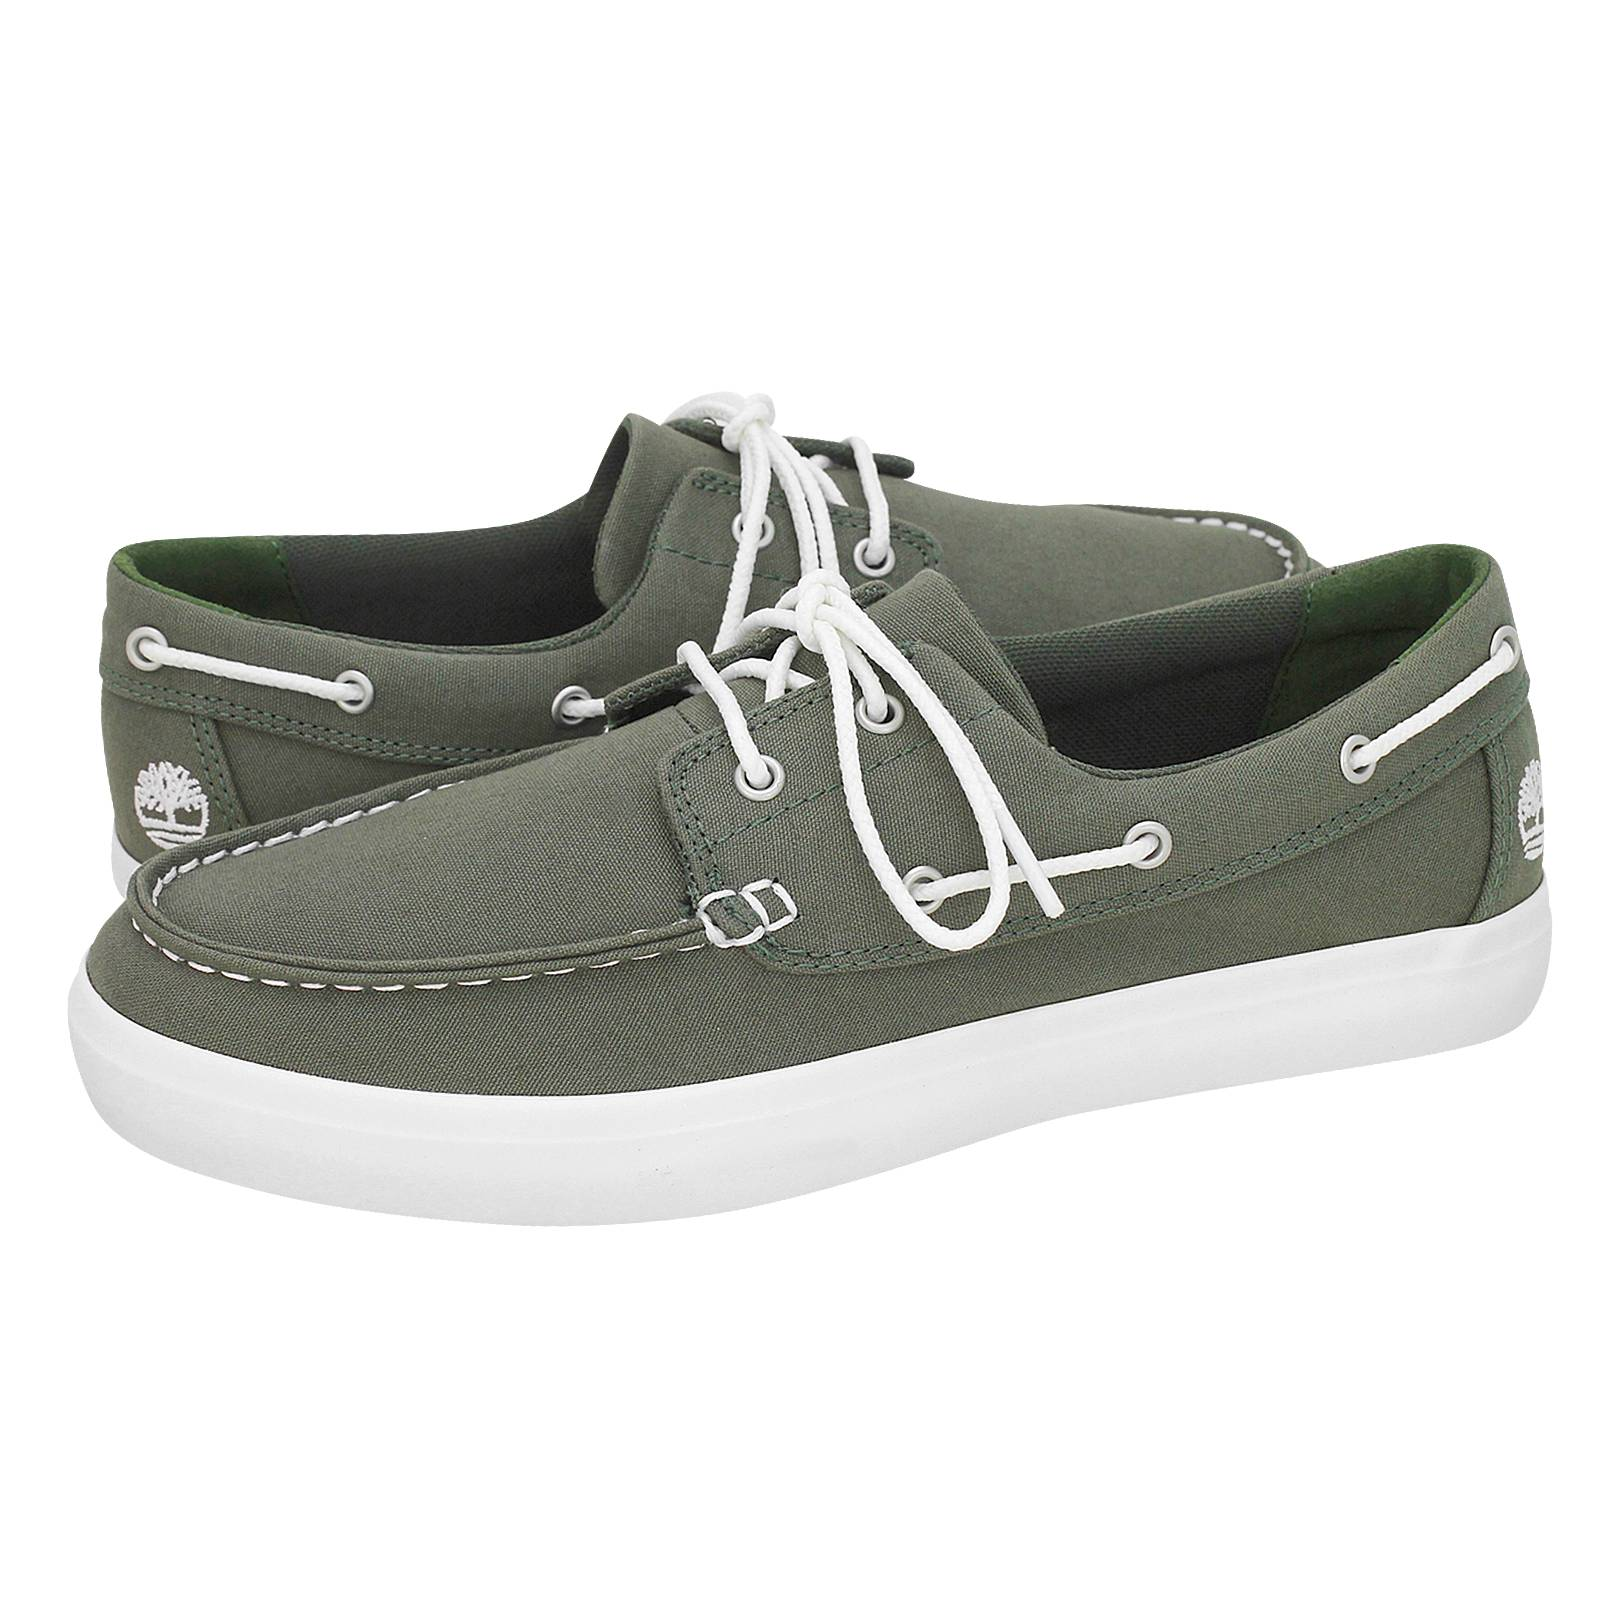 dad872a9d4d Union Wharf 2 - Timberland Men's boat shoes made of fabric - Gianna ...